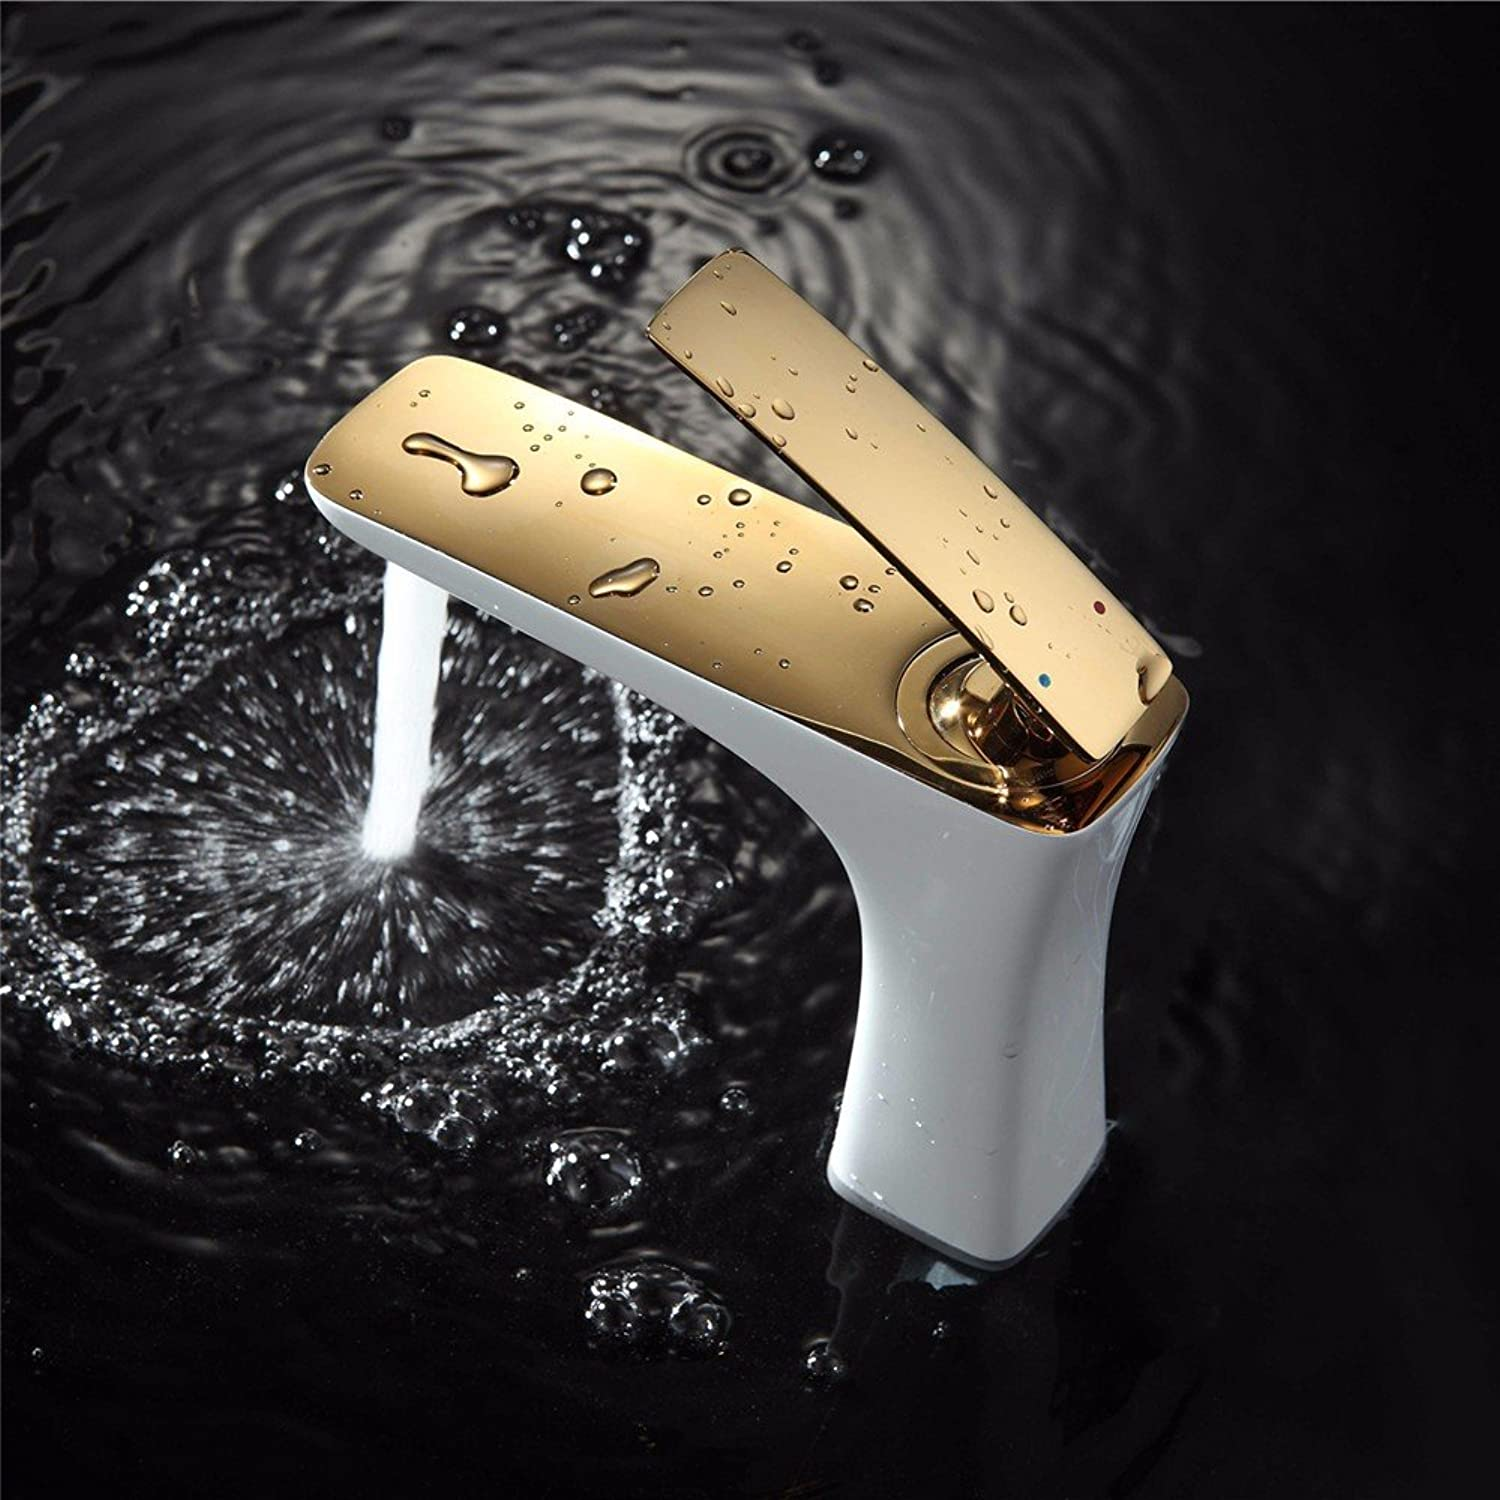 WasserhahnTap All copper short paint hot and cold water ceramic valve single hole single handle hand bathroom basin faucet white gold